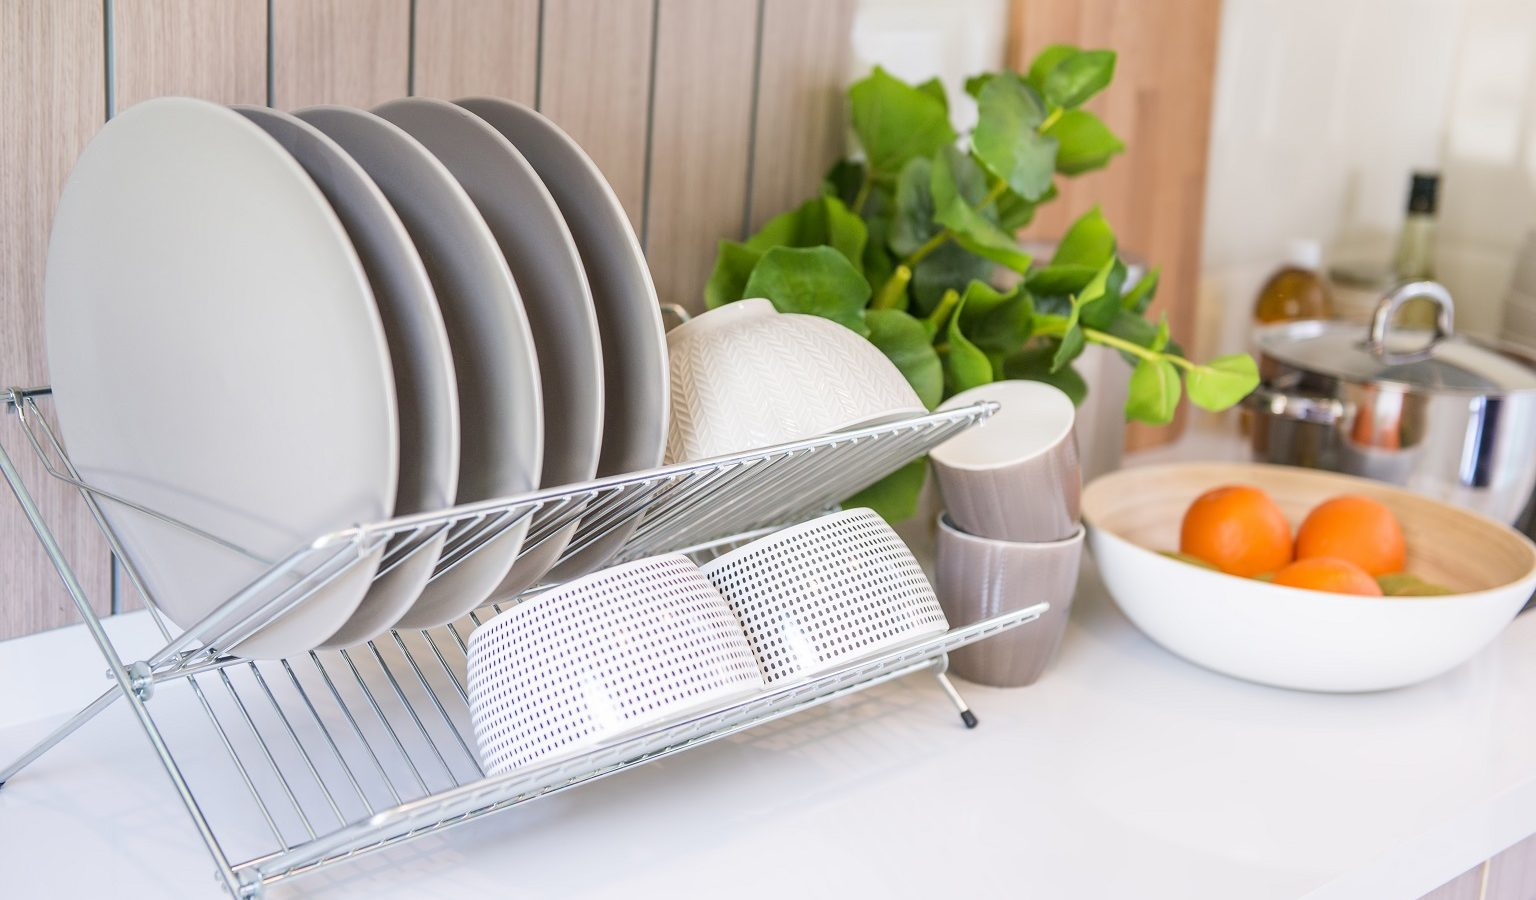 Best Over Sink Dish Rack